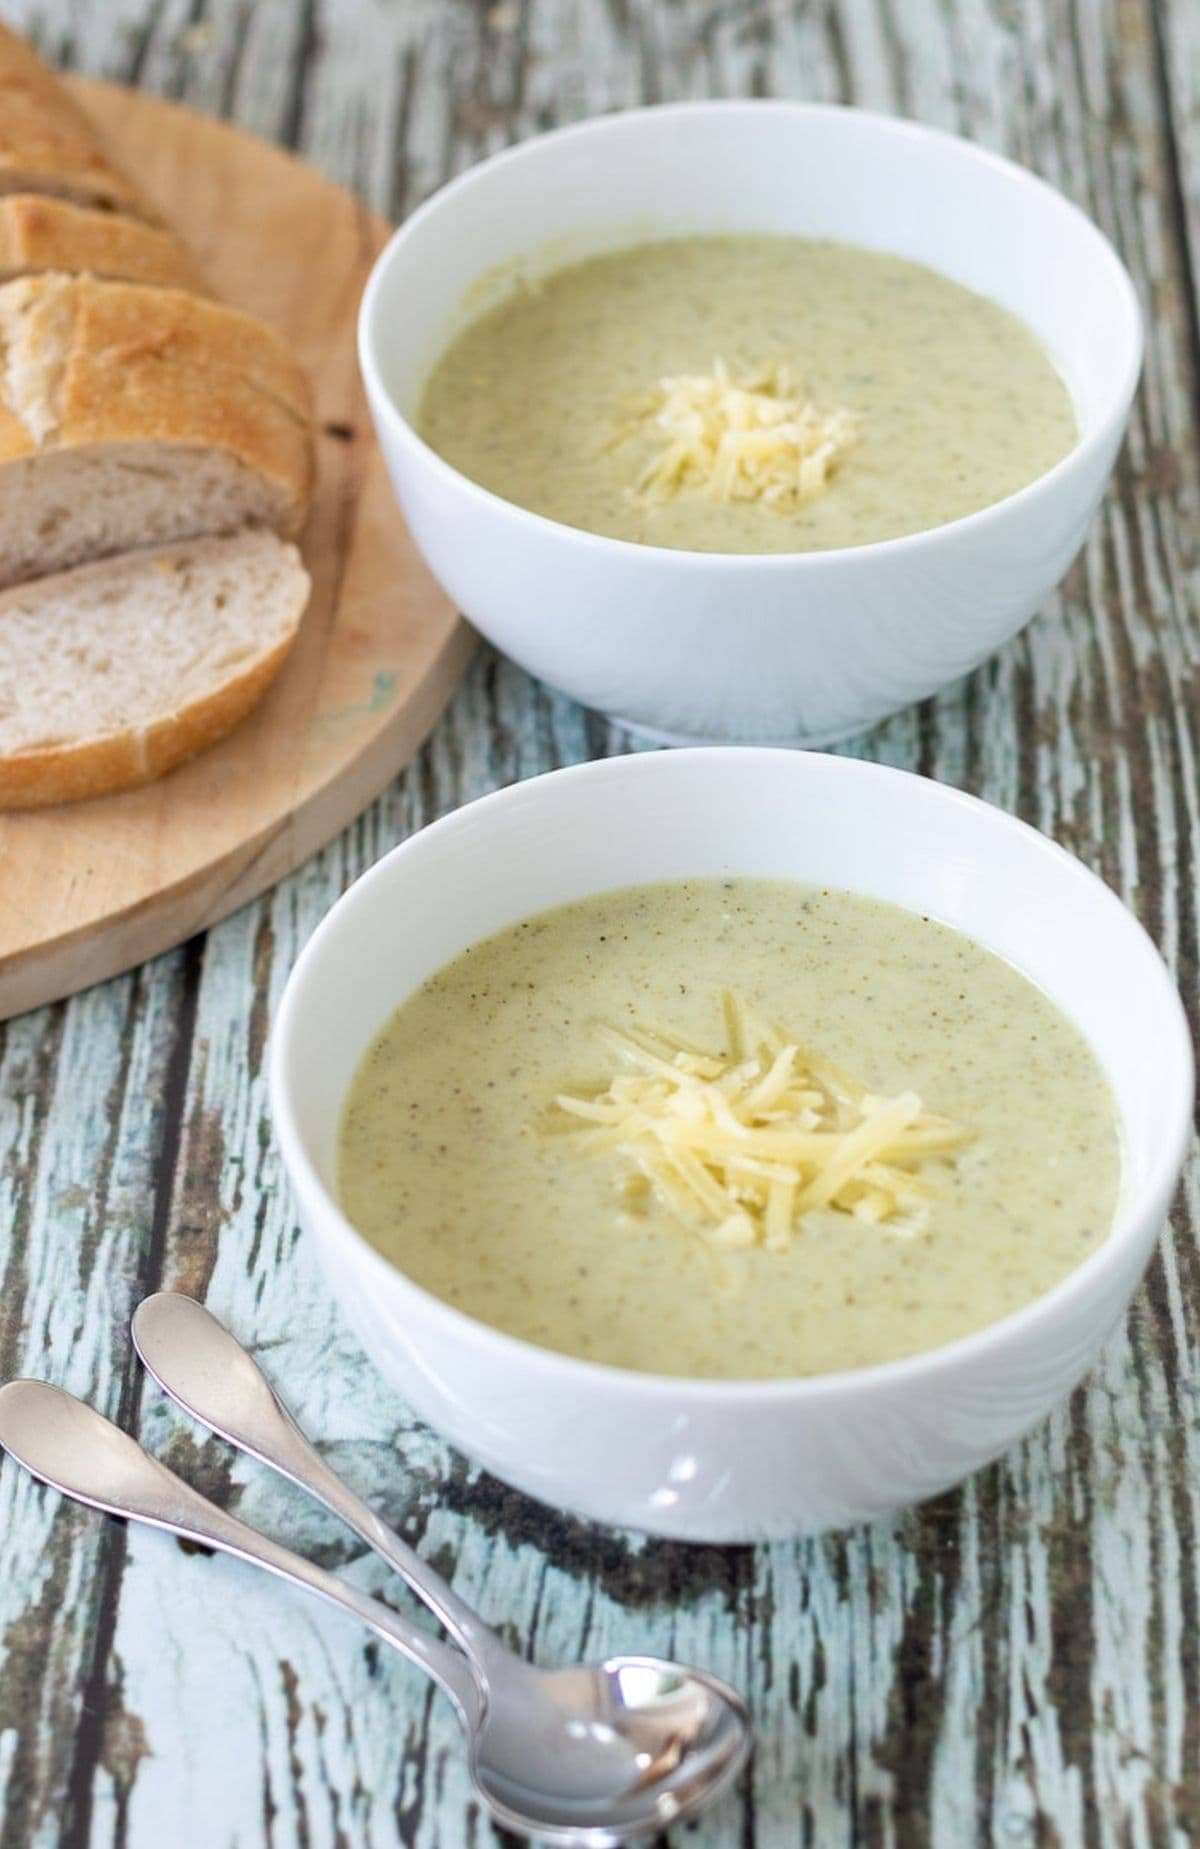 Two bowls of broccoli and potato soup garnished with some grated cheese. Sliced bread on a board to the side.